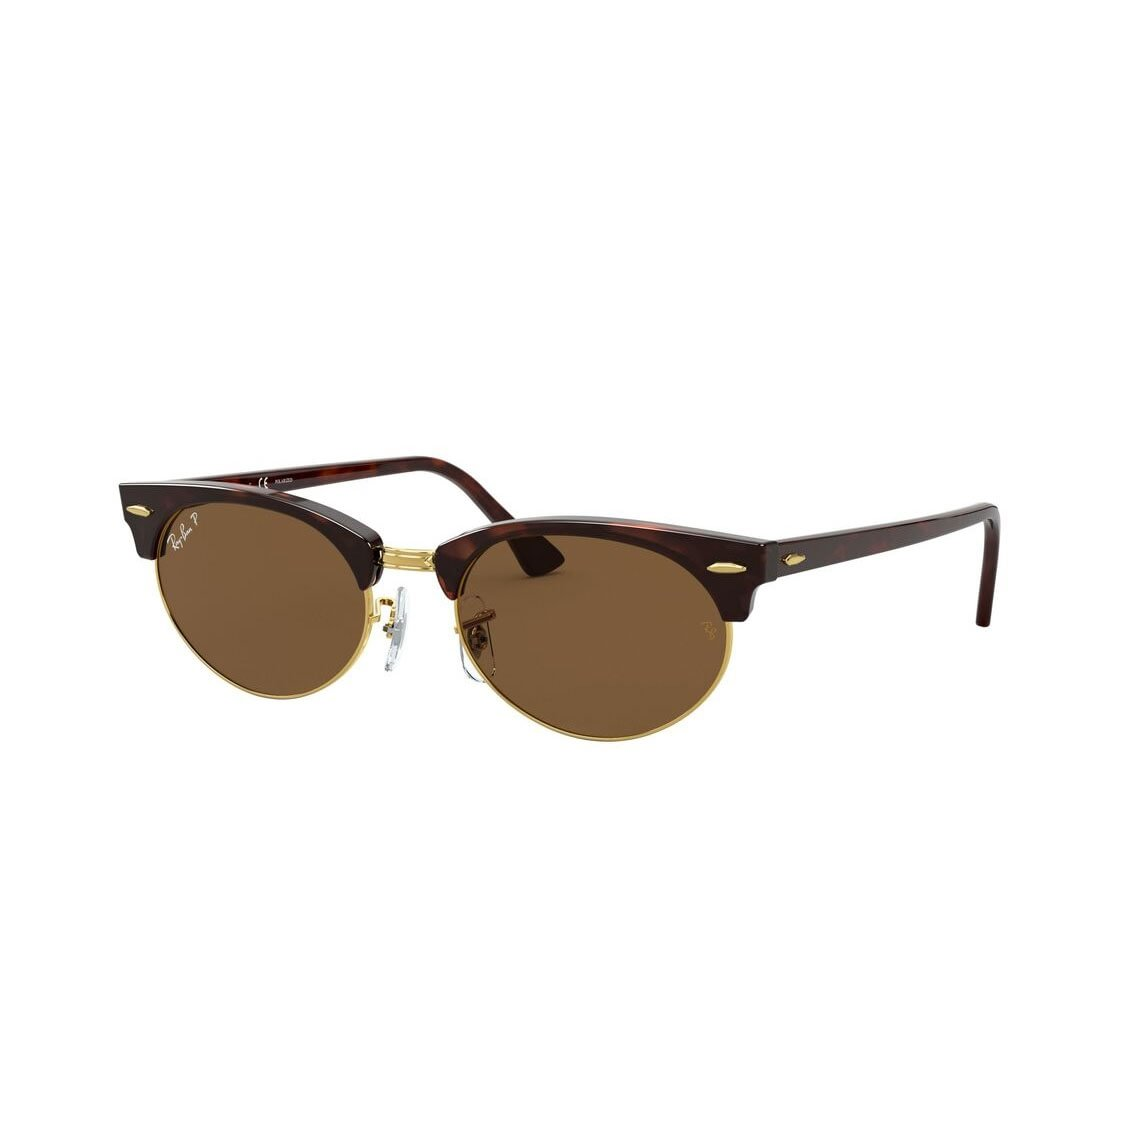 Ray-Ban Clubmaster Oval RB3946 130457 52